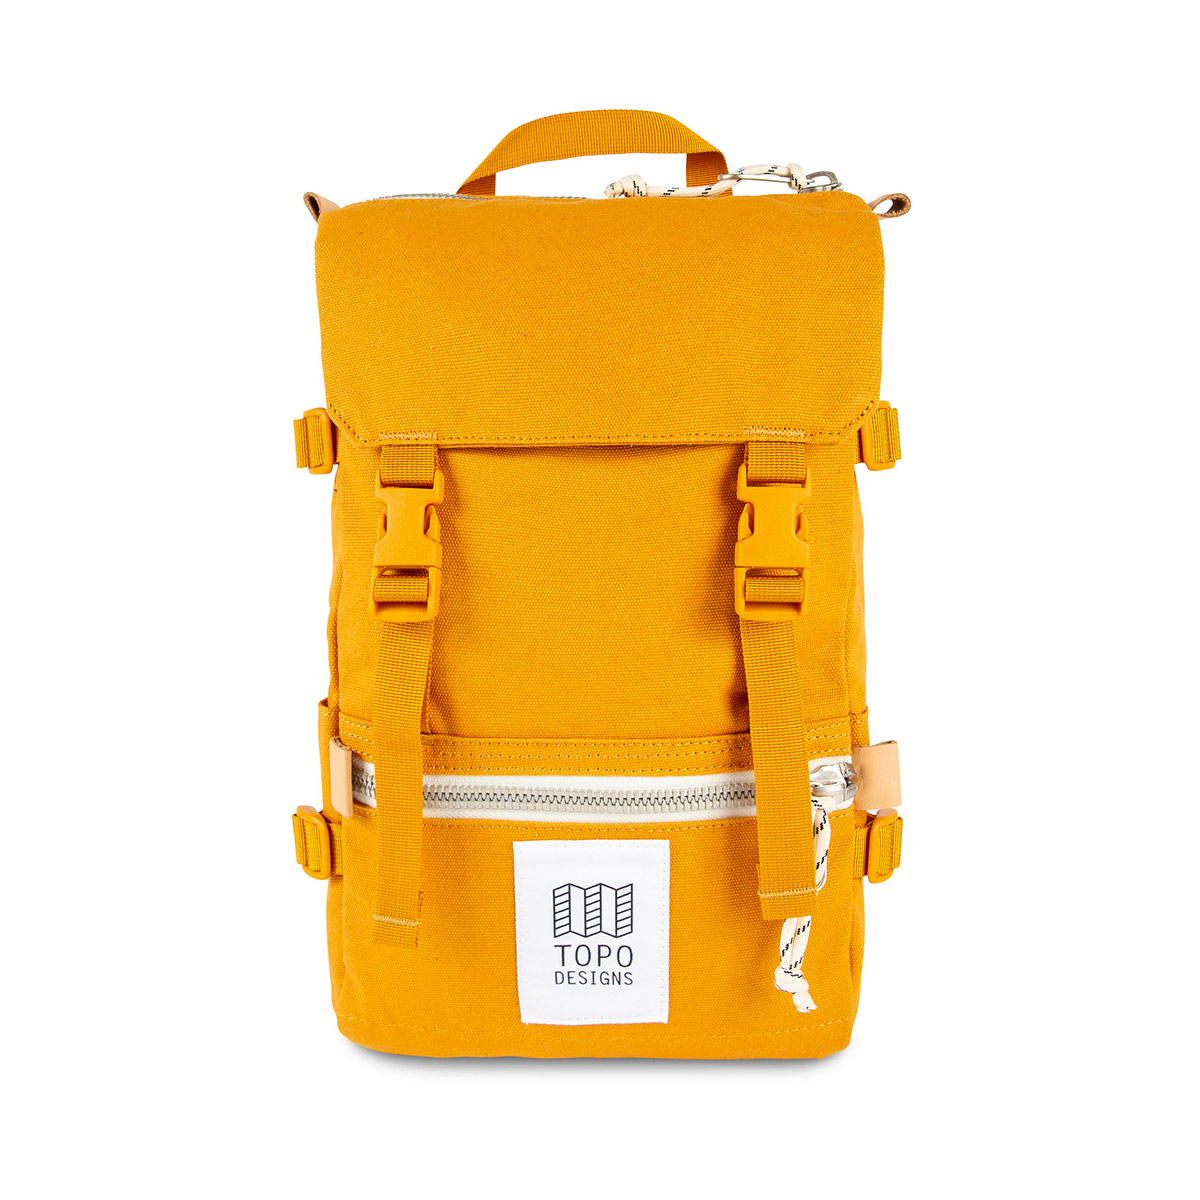 Topo Designs Rover Pack - Mini Canvas Yellow, statement-making bag that's the perfect size for errands around town or on the trail